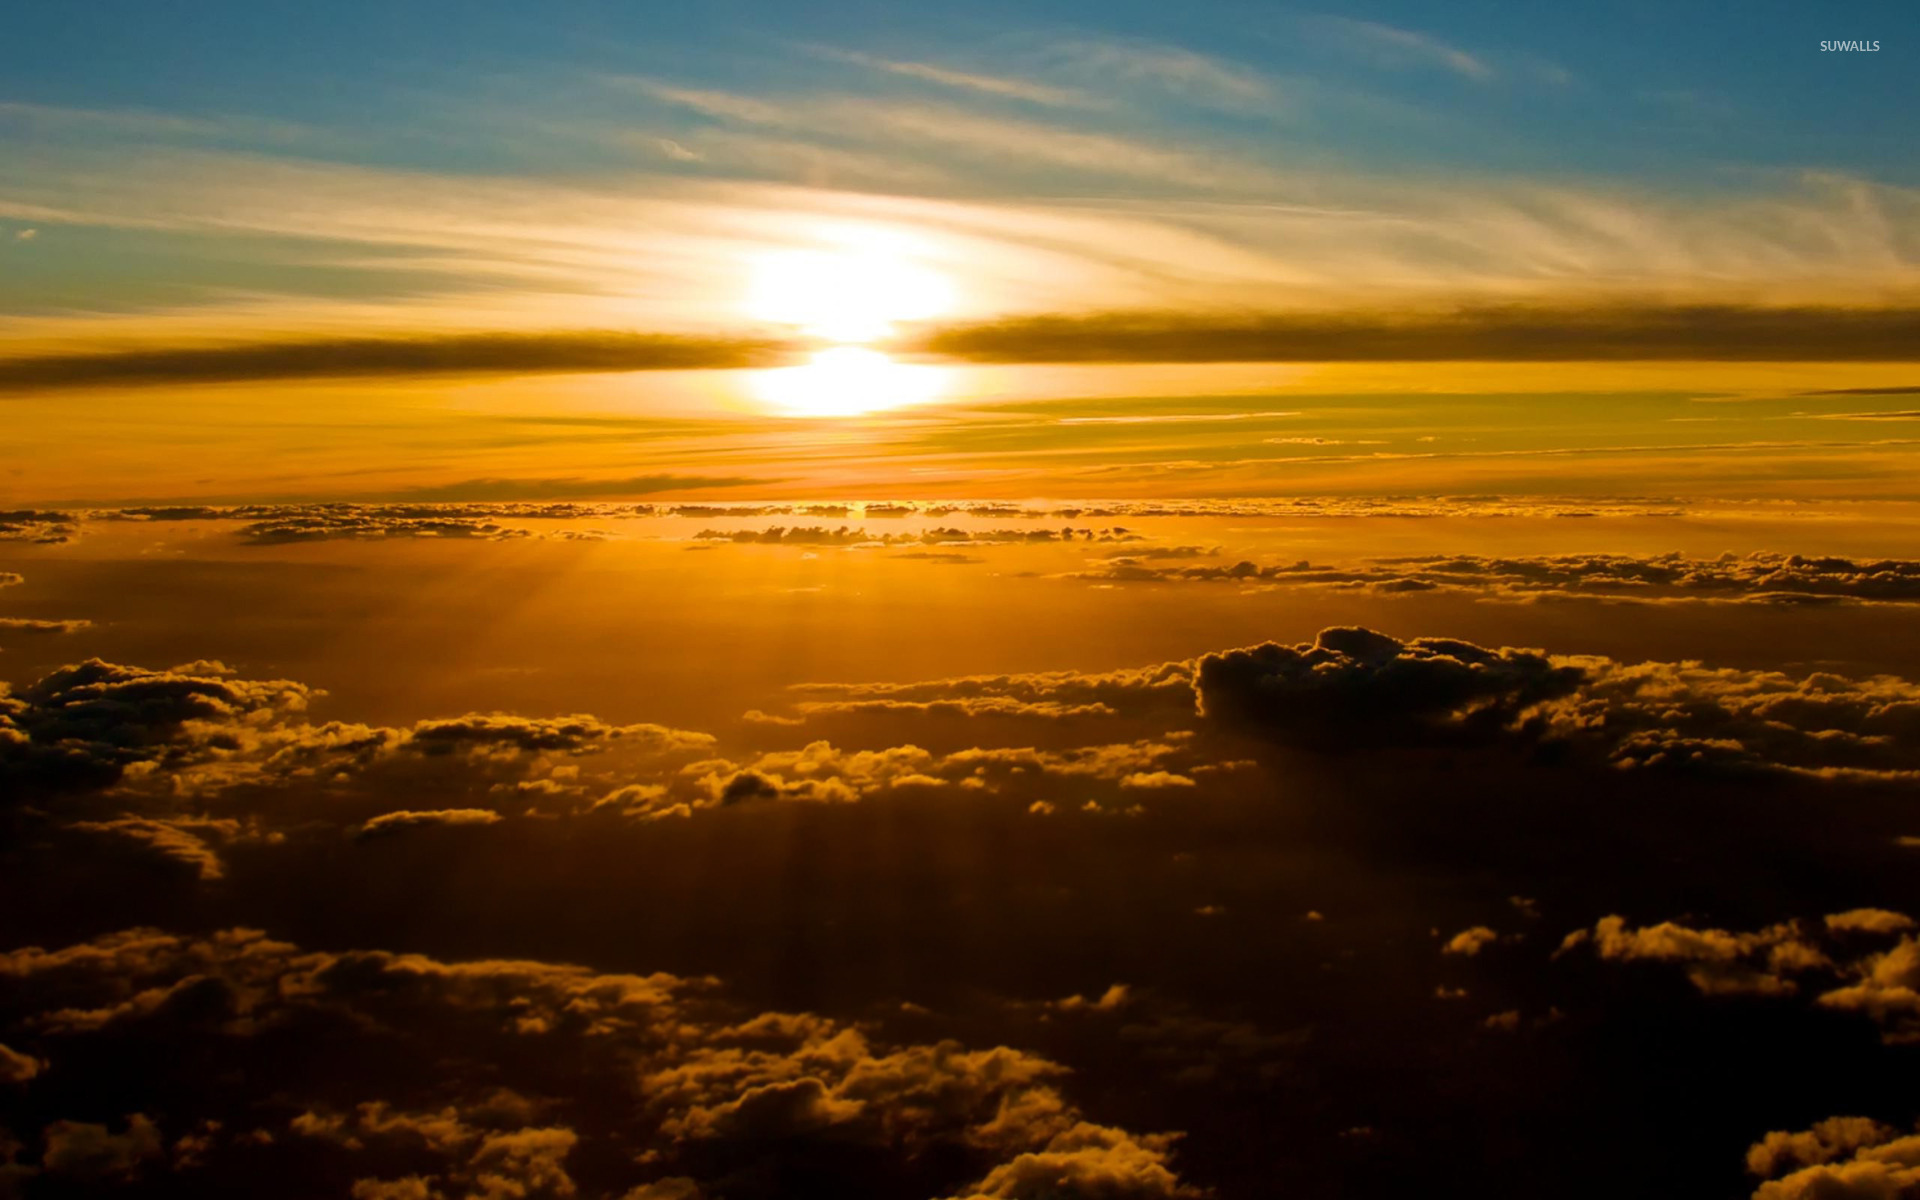 Sunset above the clouds 2 wallpaper - Nature wallpapers ...